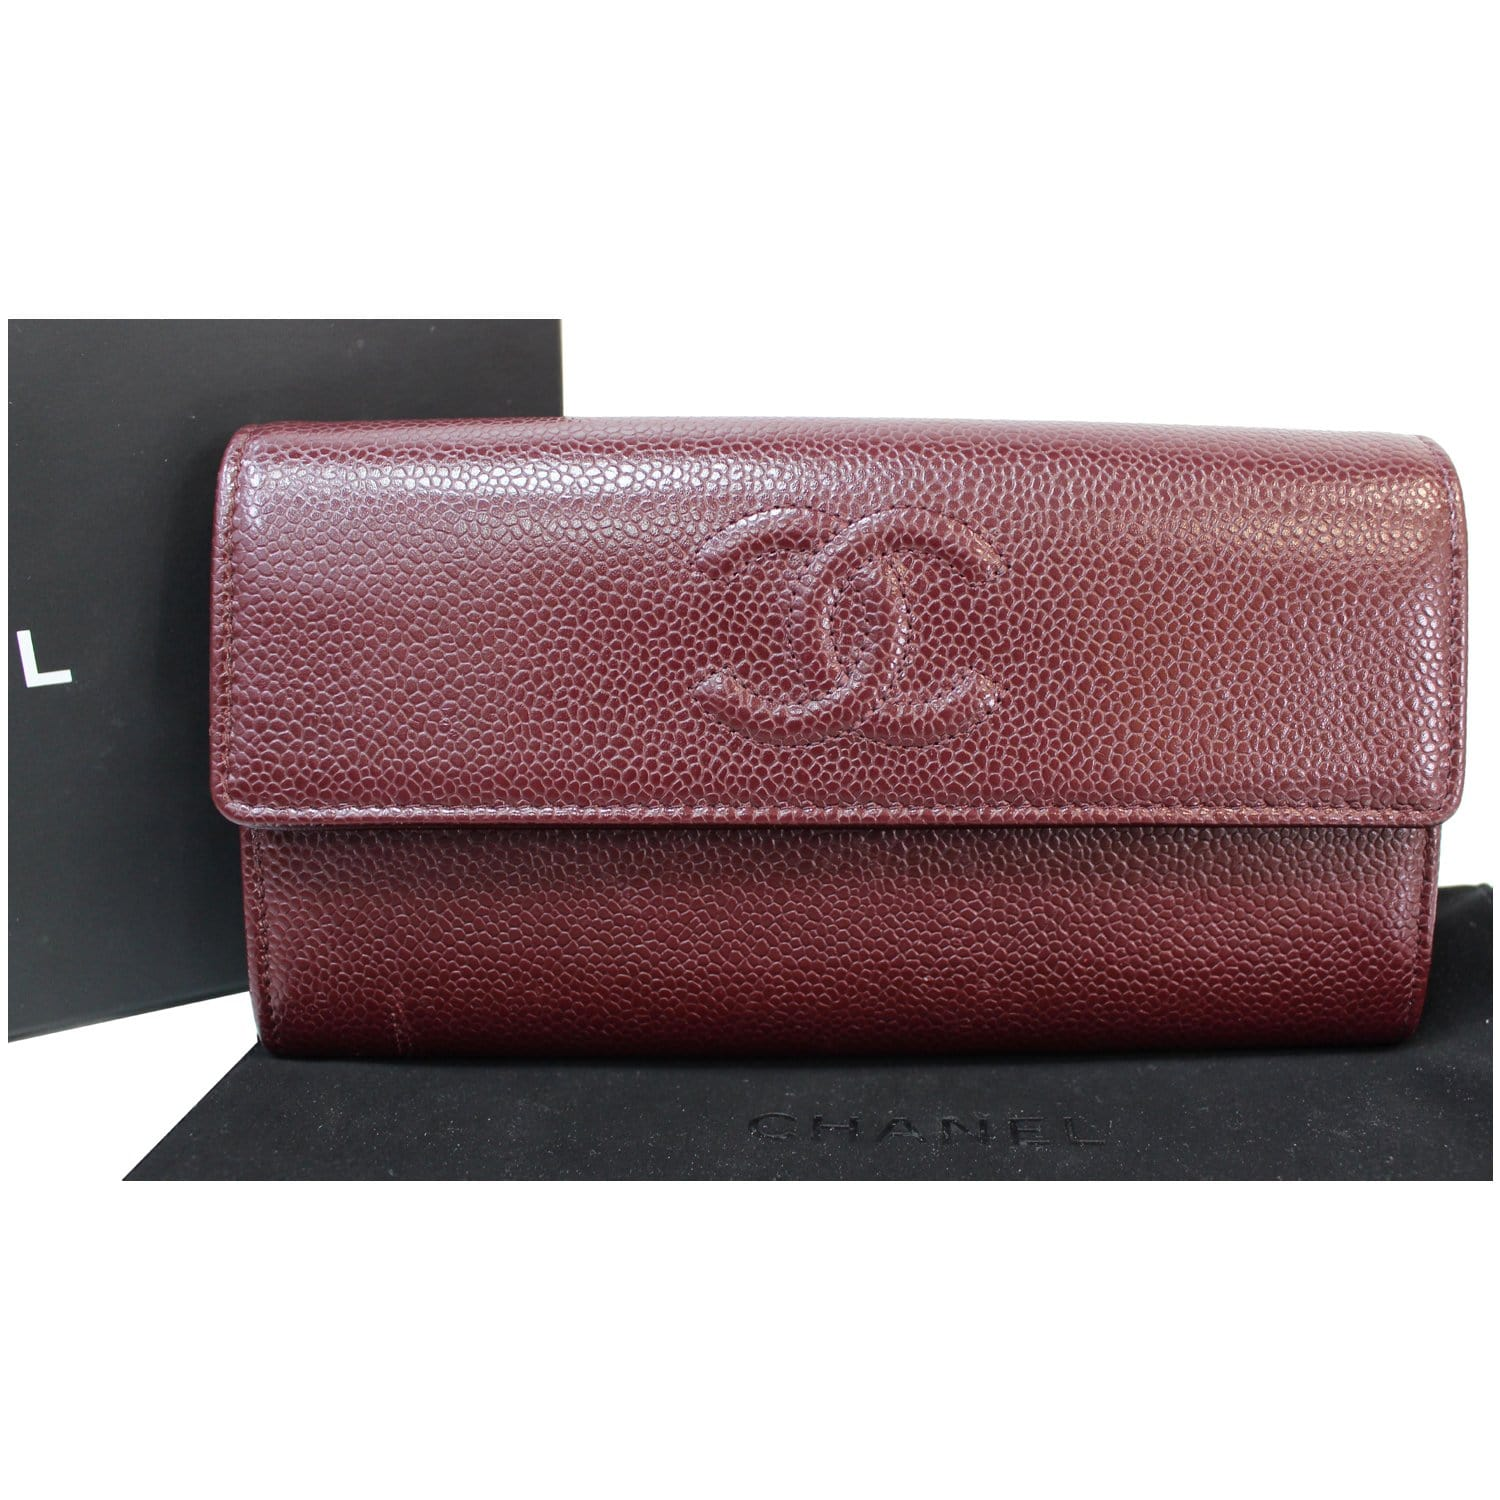 Chanel Timeless Cc Large Gusset Flap Caviar Wallet Like all our bags, the chanel wallet on chain bags offered by collector square have been assessed and authenticated. chanel